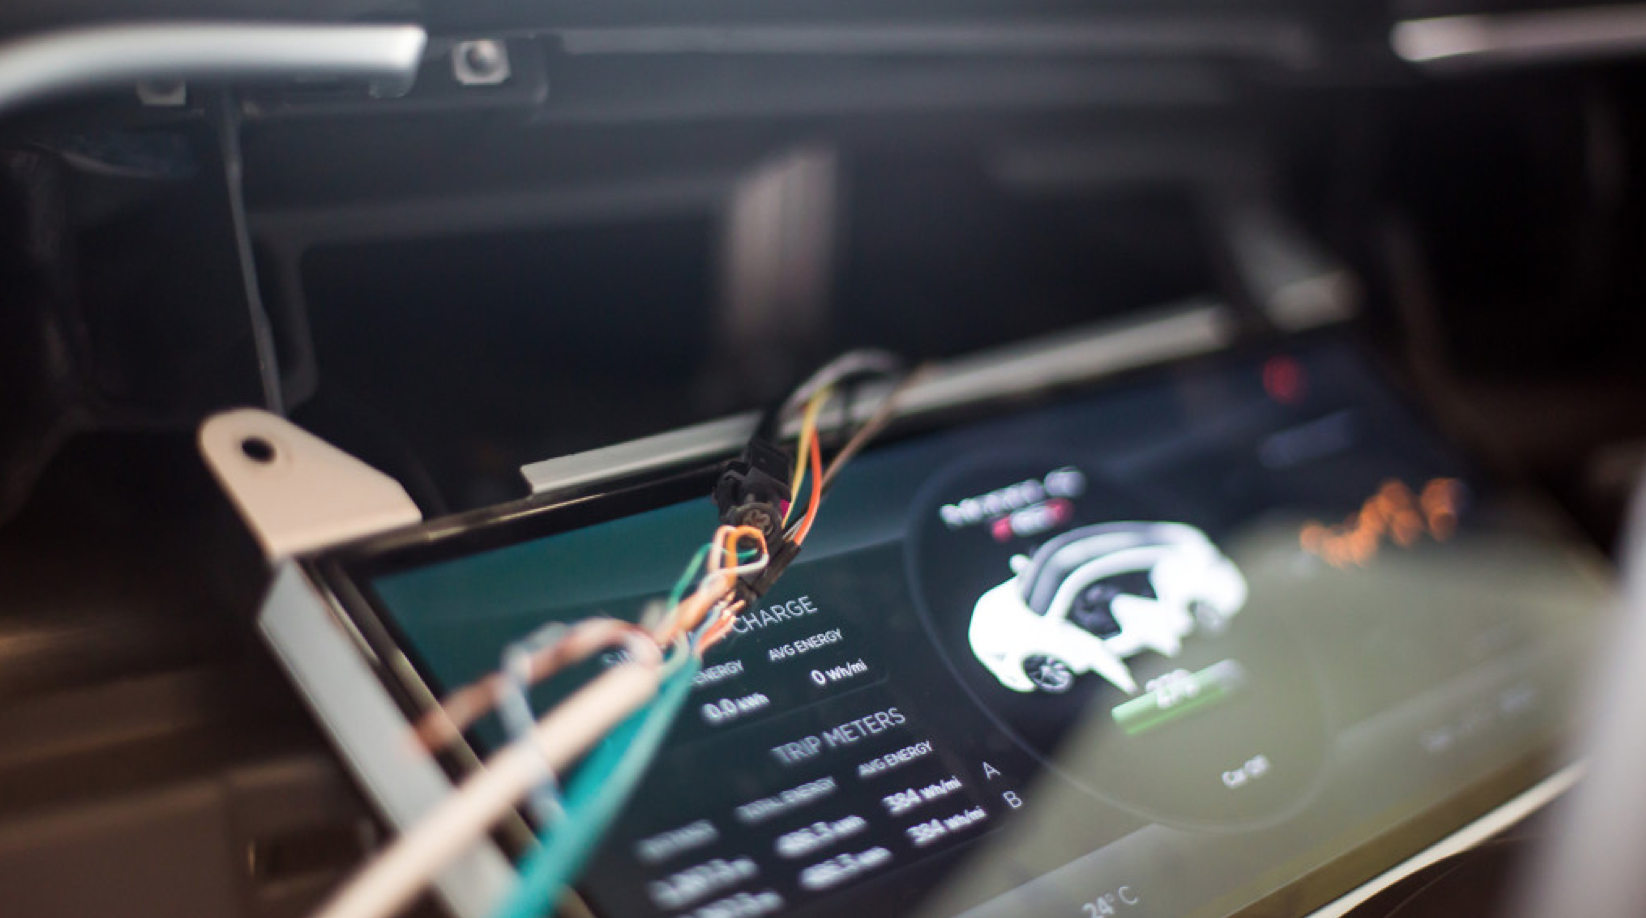 The expensive Tesla's Model S automobile is vulnerable to hackers.